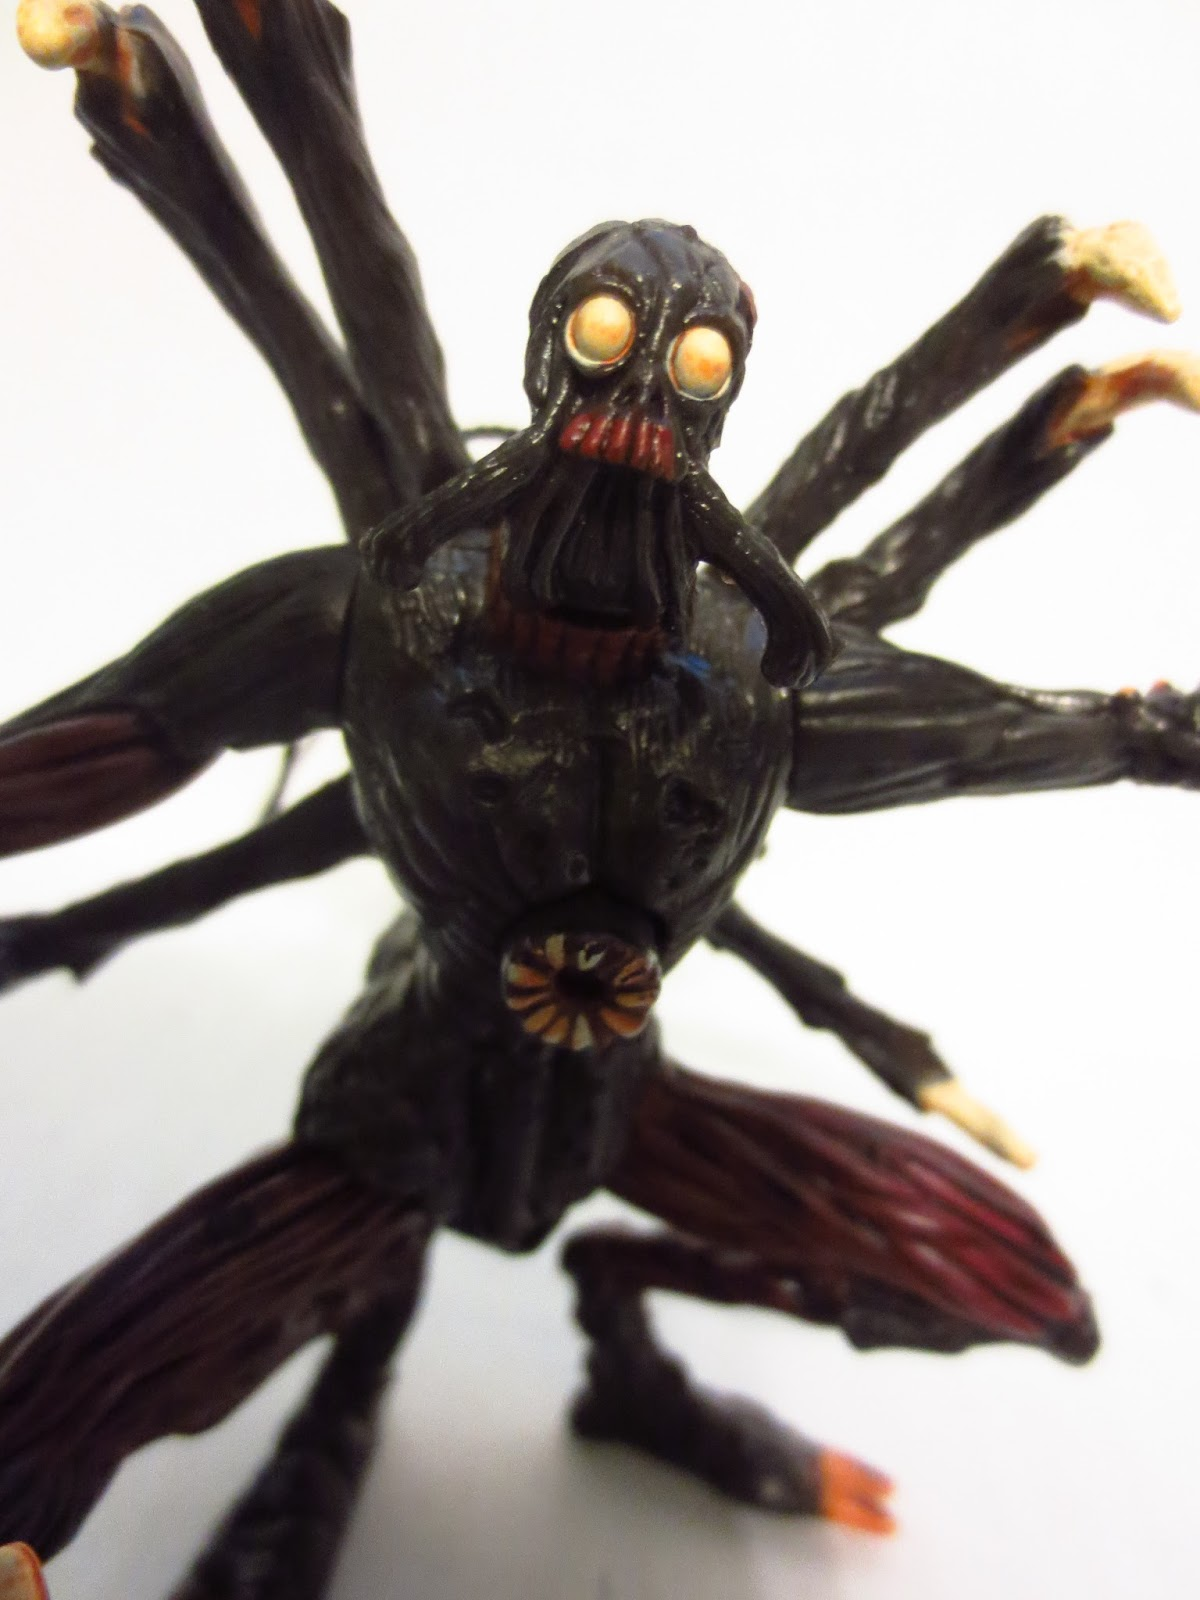 Cool Bug Toys : Action figure barbecue review hunter